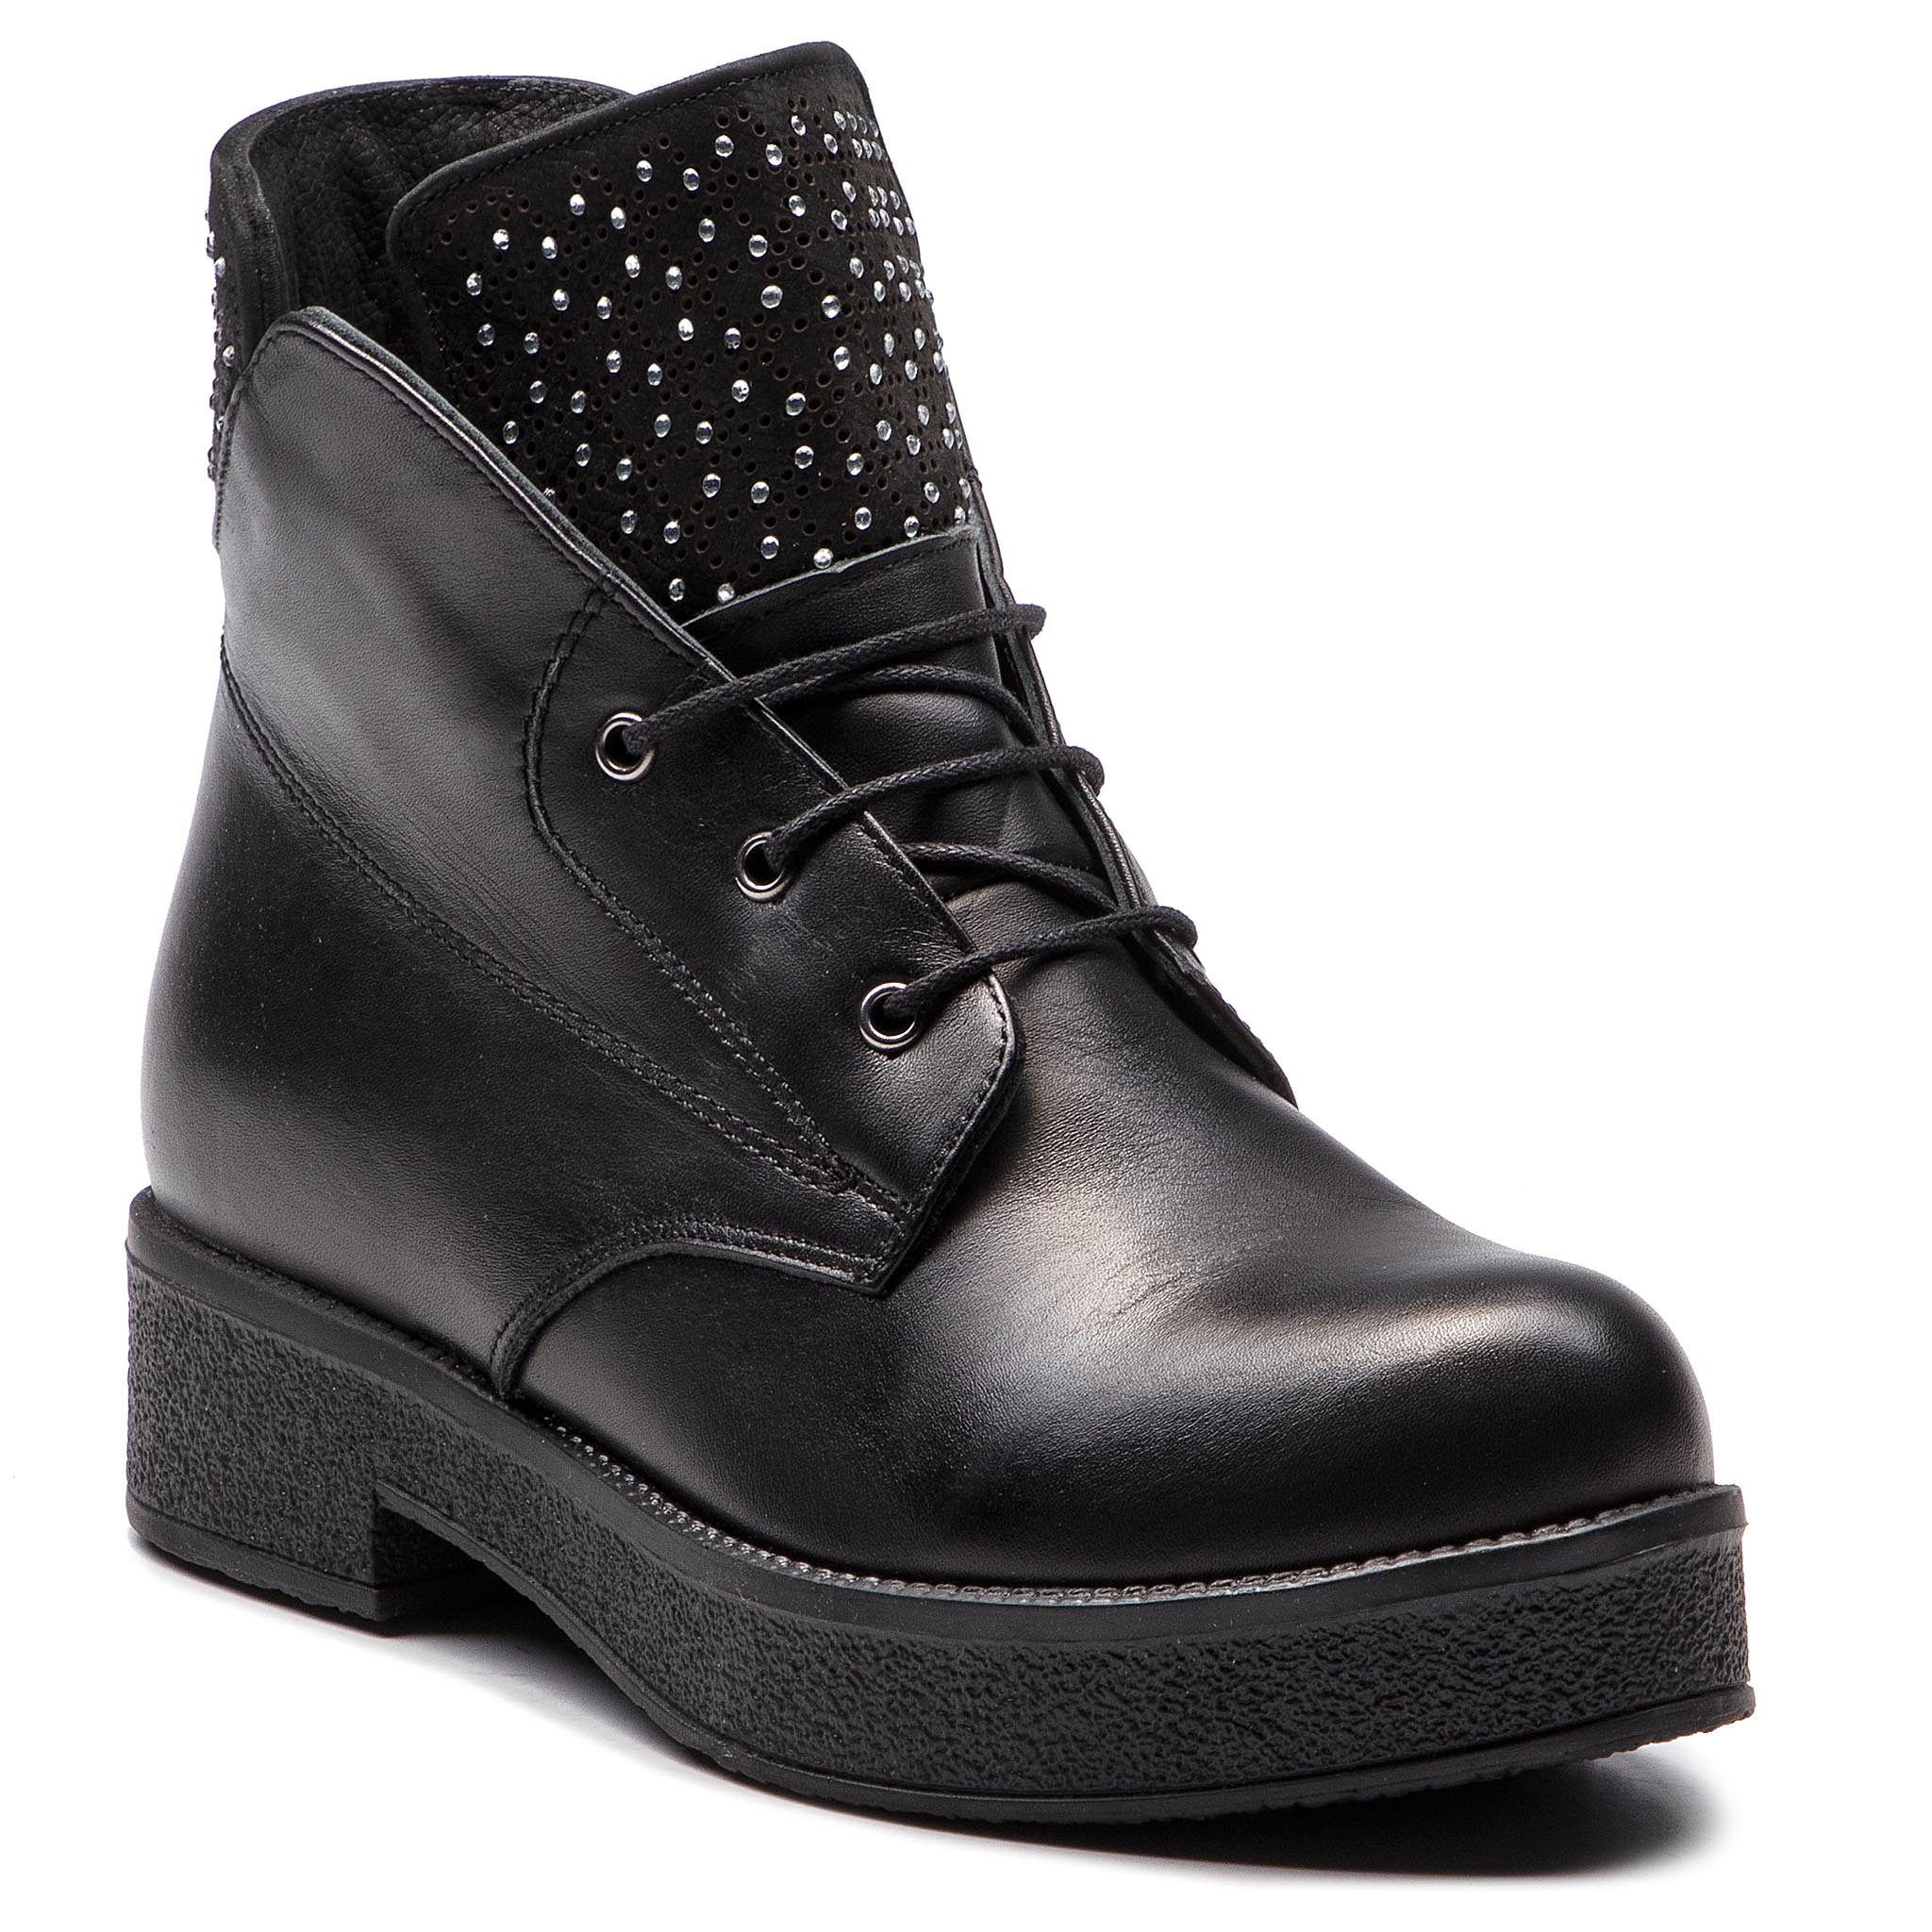 Bottines LORETTA VITALE - 050 Black